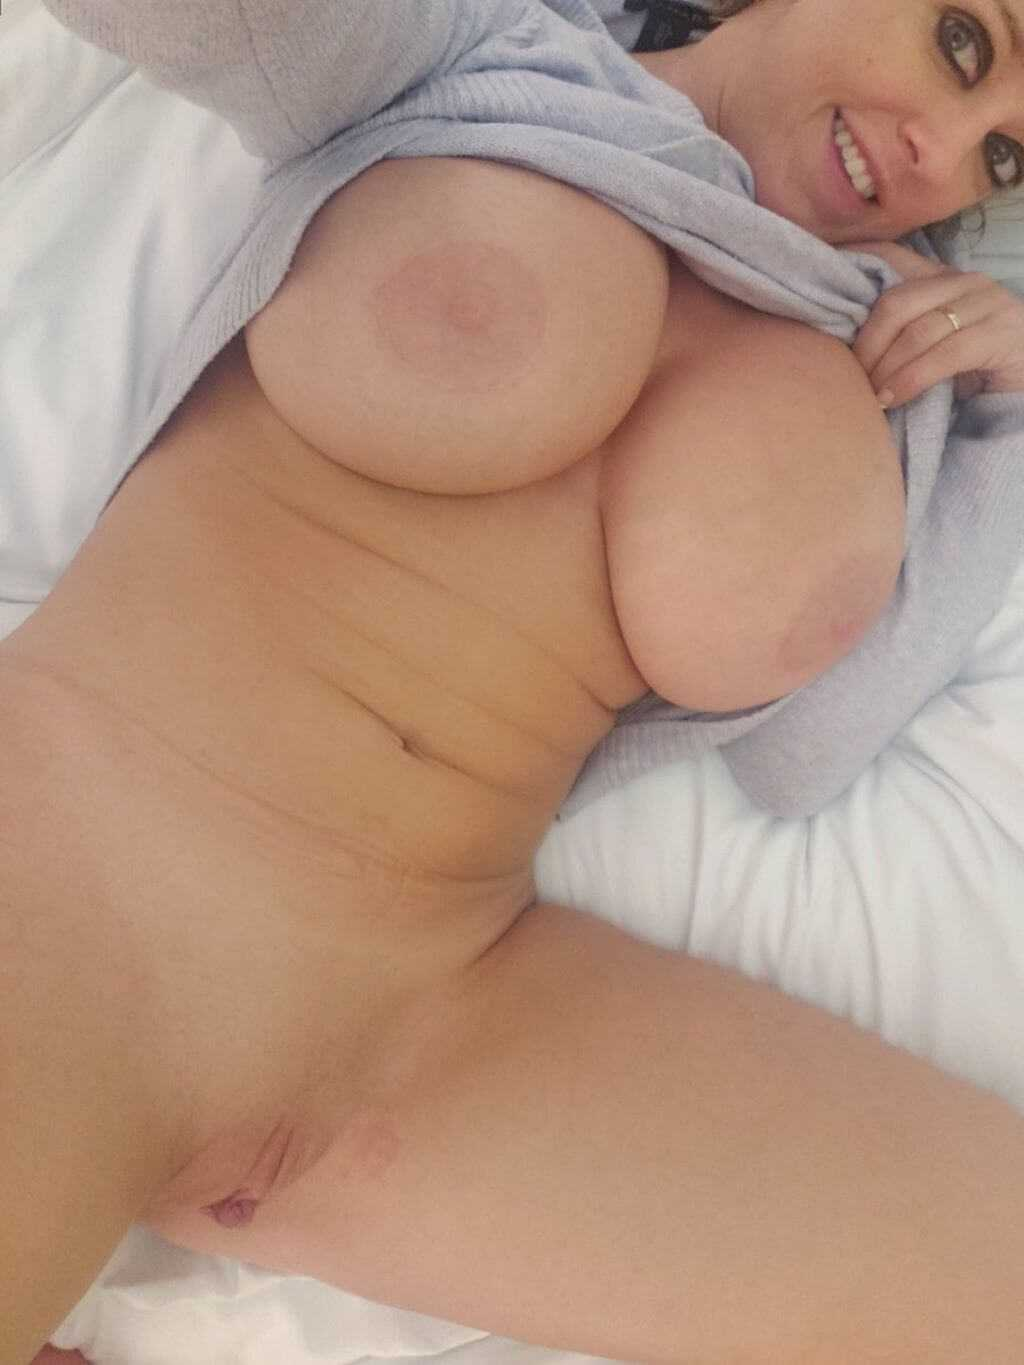 Carrie moon nude